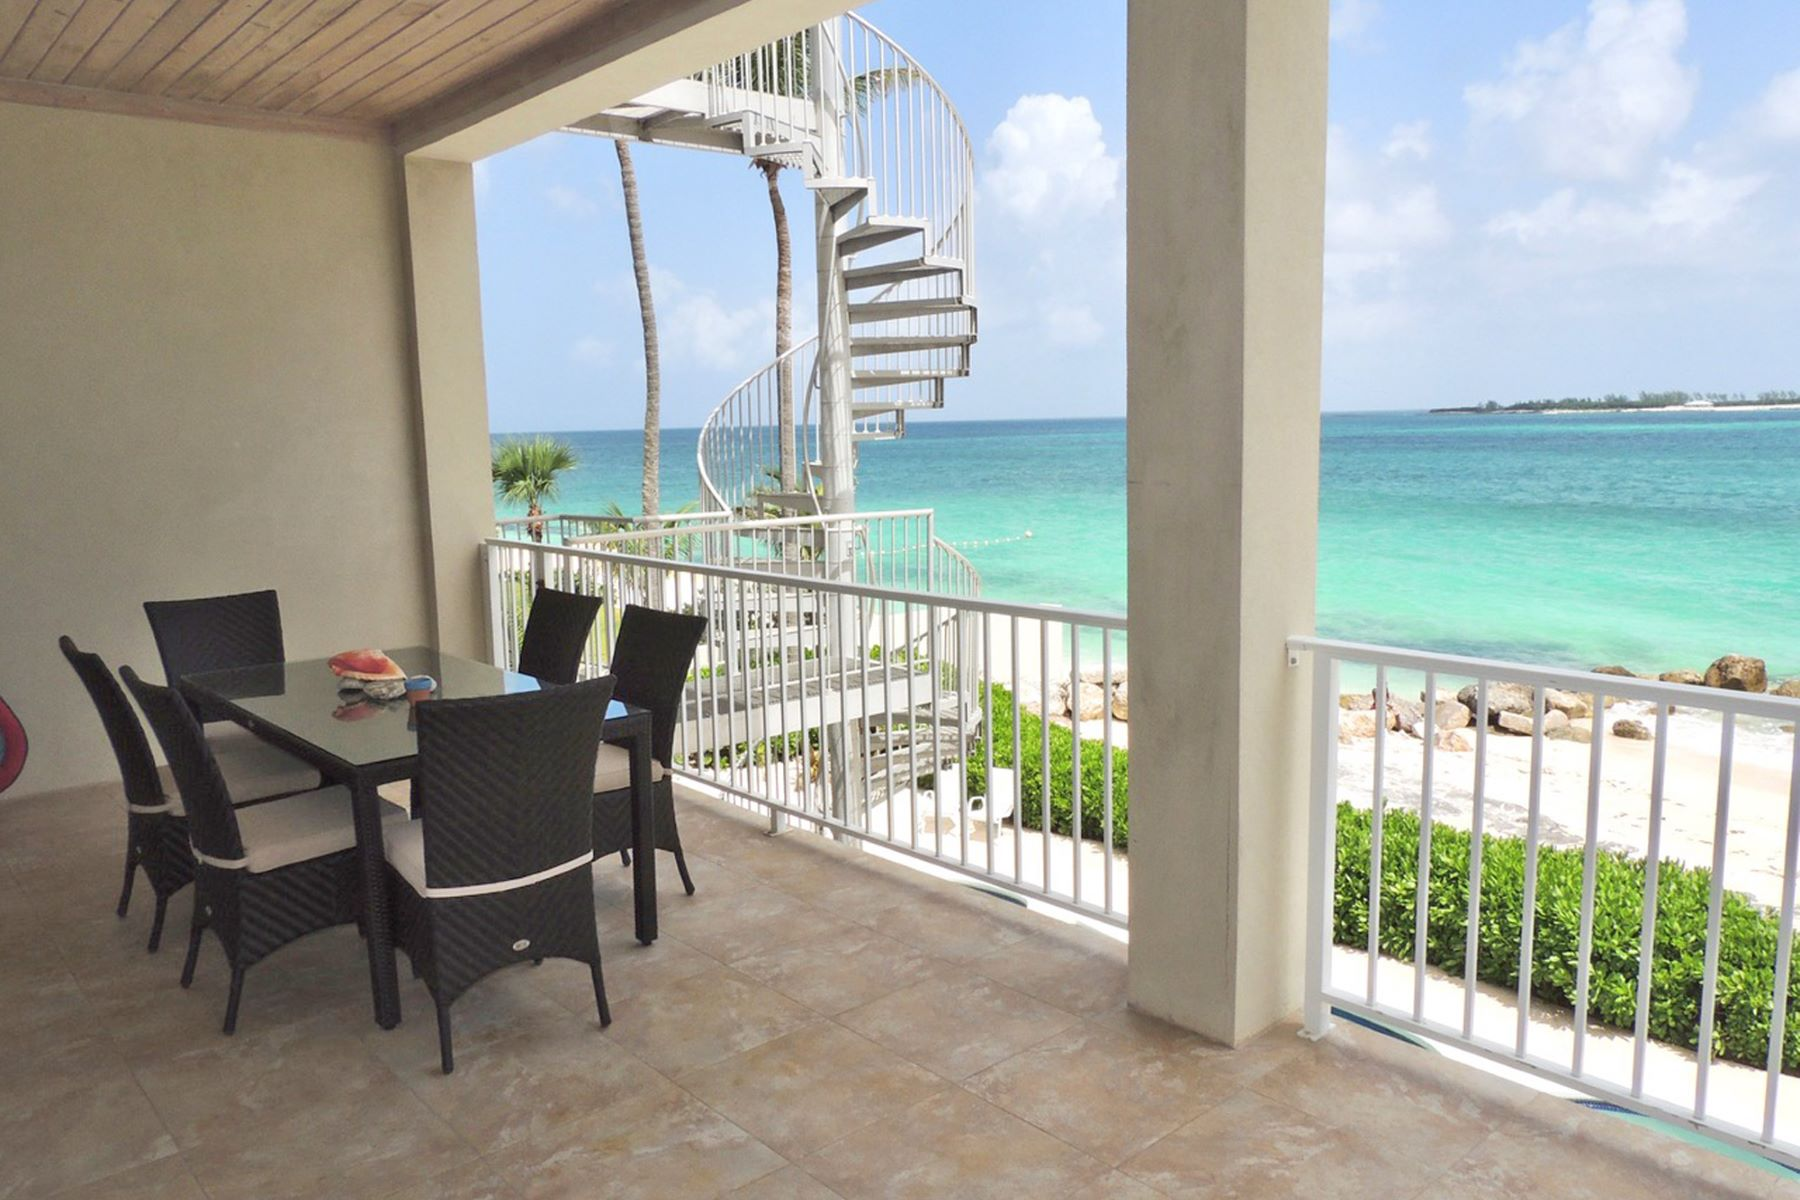 Condominium for Sale at Eves of Cable Beach Eves Of Cable Beach, Cable Beach, Nassau And Paradise Island Bahamas